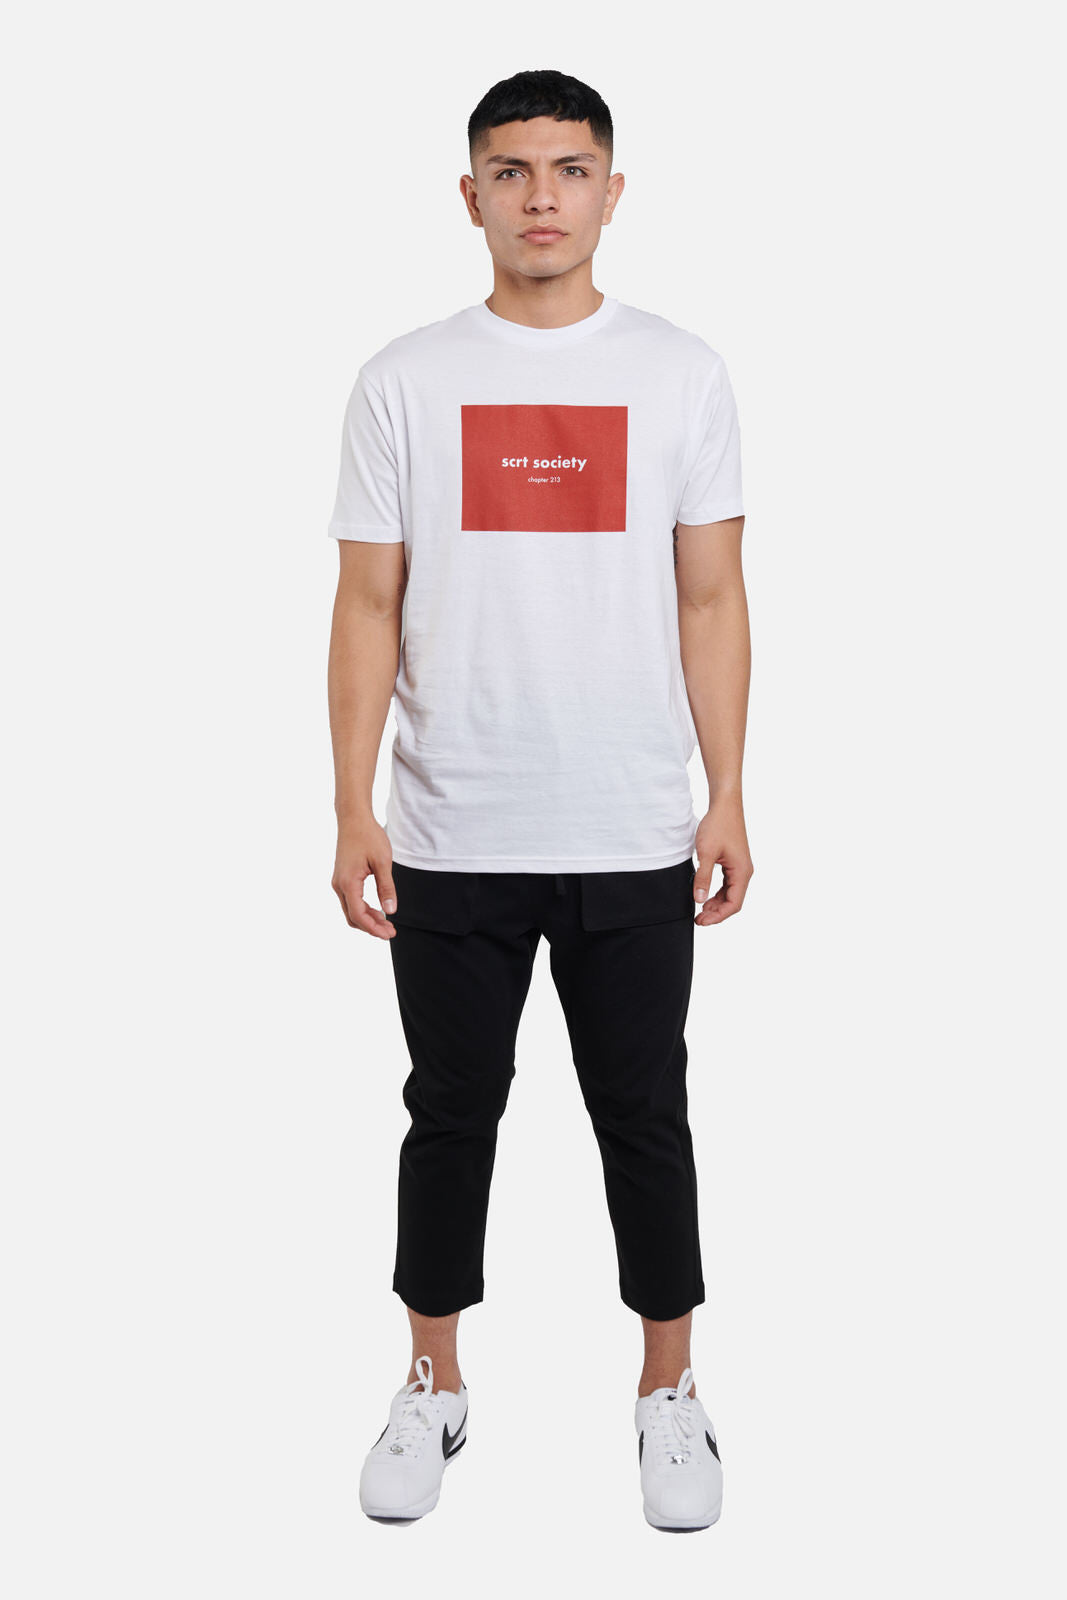 esko article 1 box tee - scrt society